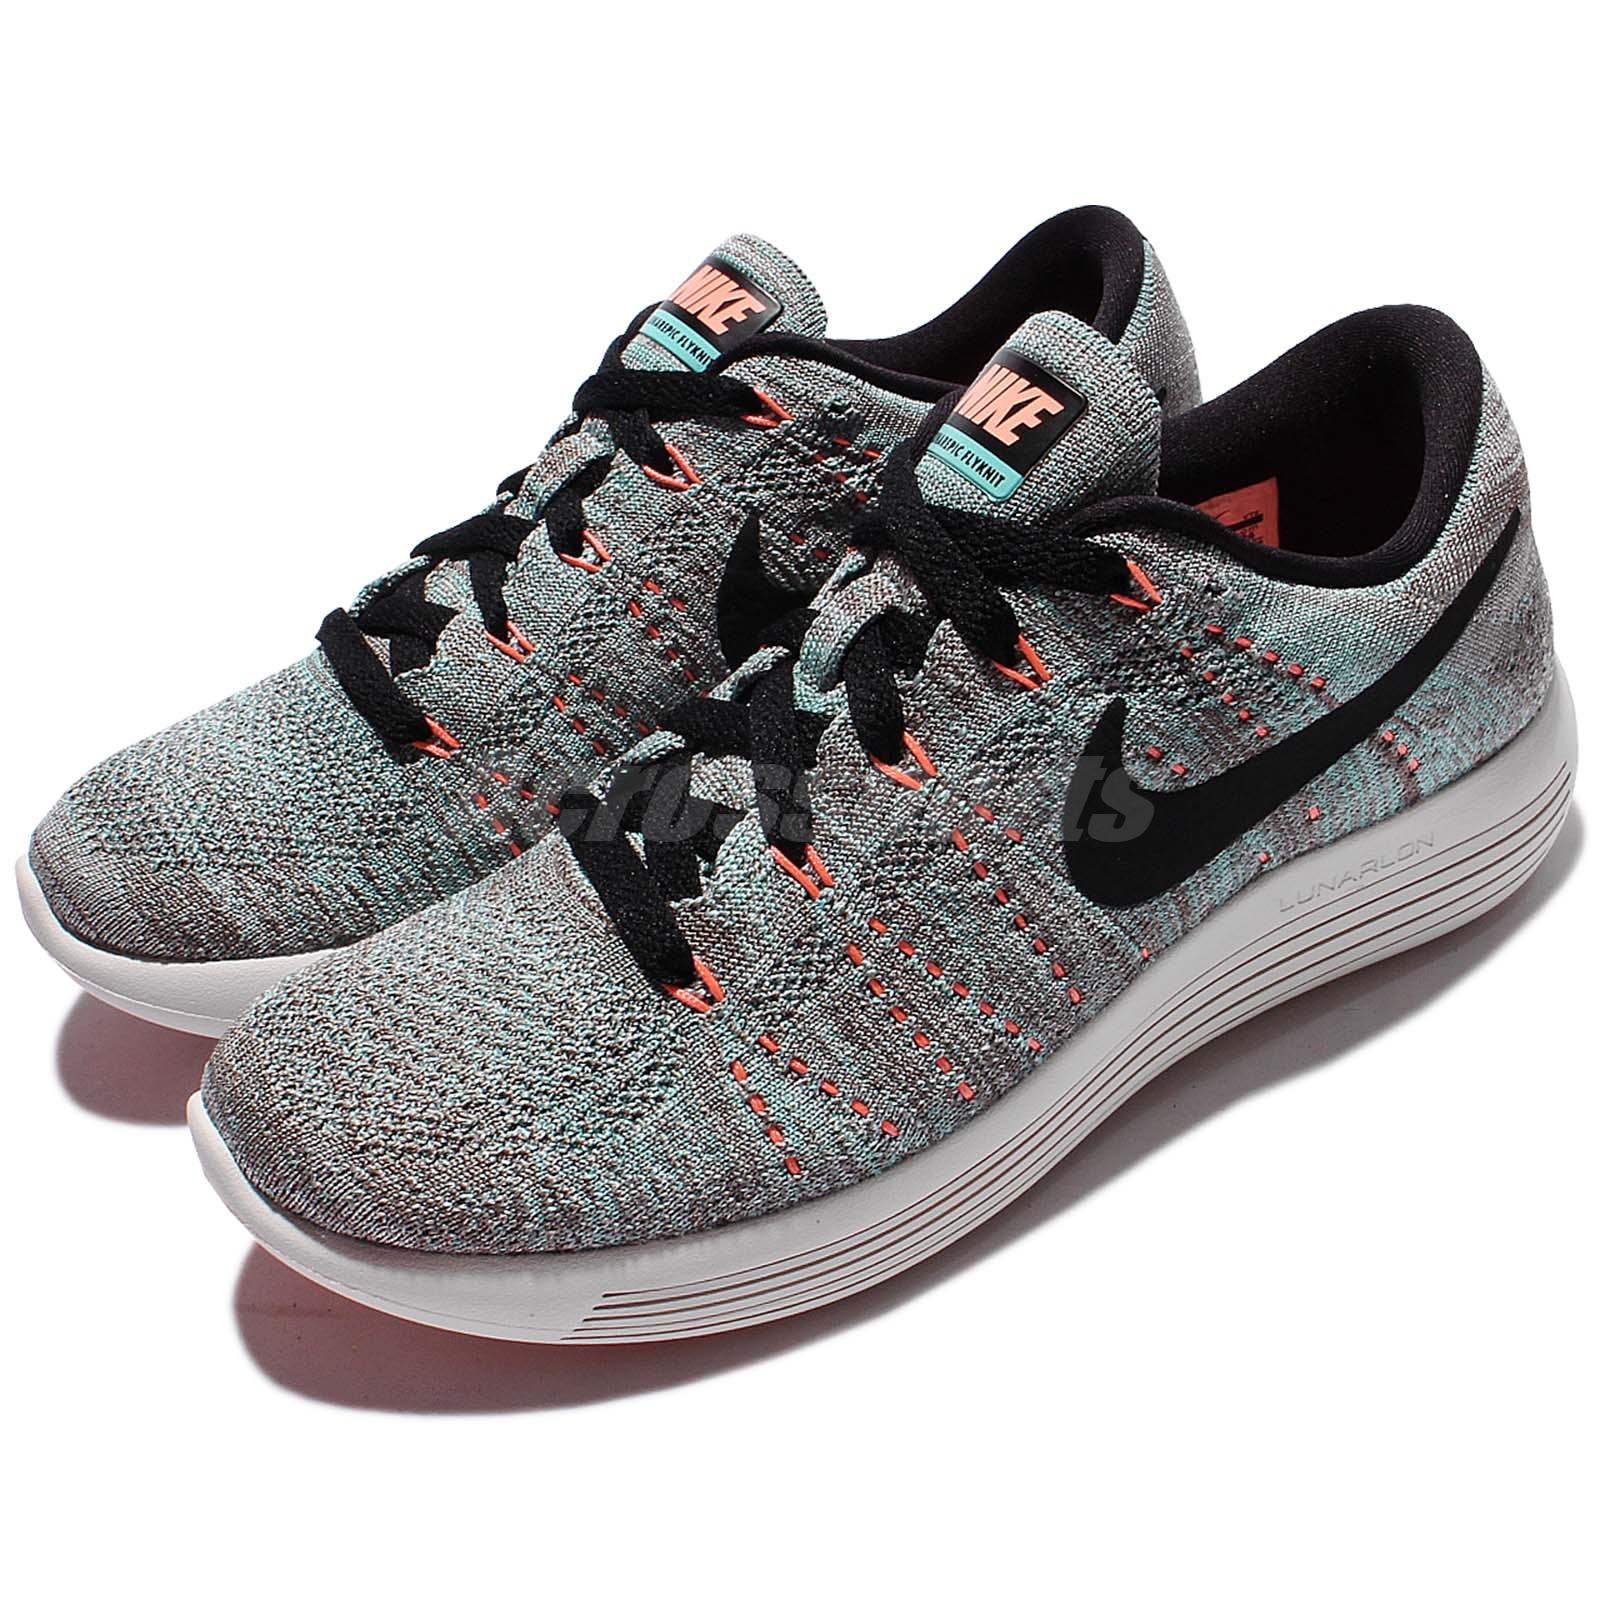 Details about Nike Wmns Lunarepic Low Flyknit Multi-Color Women Running  Shoes 843765-200 3403dc5f75